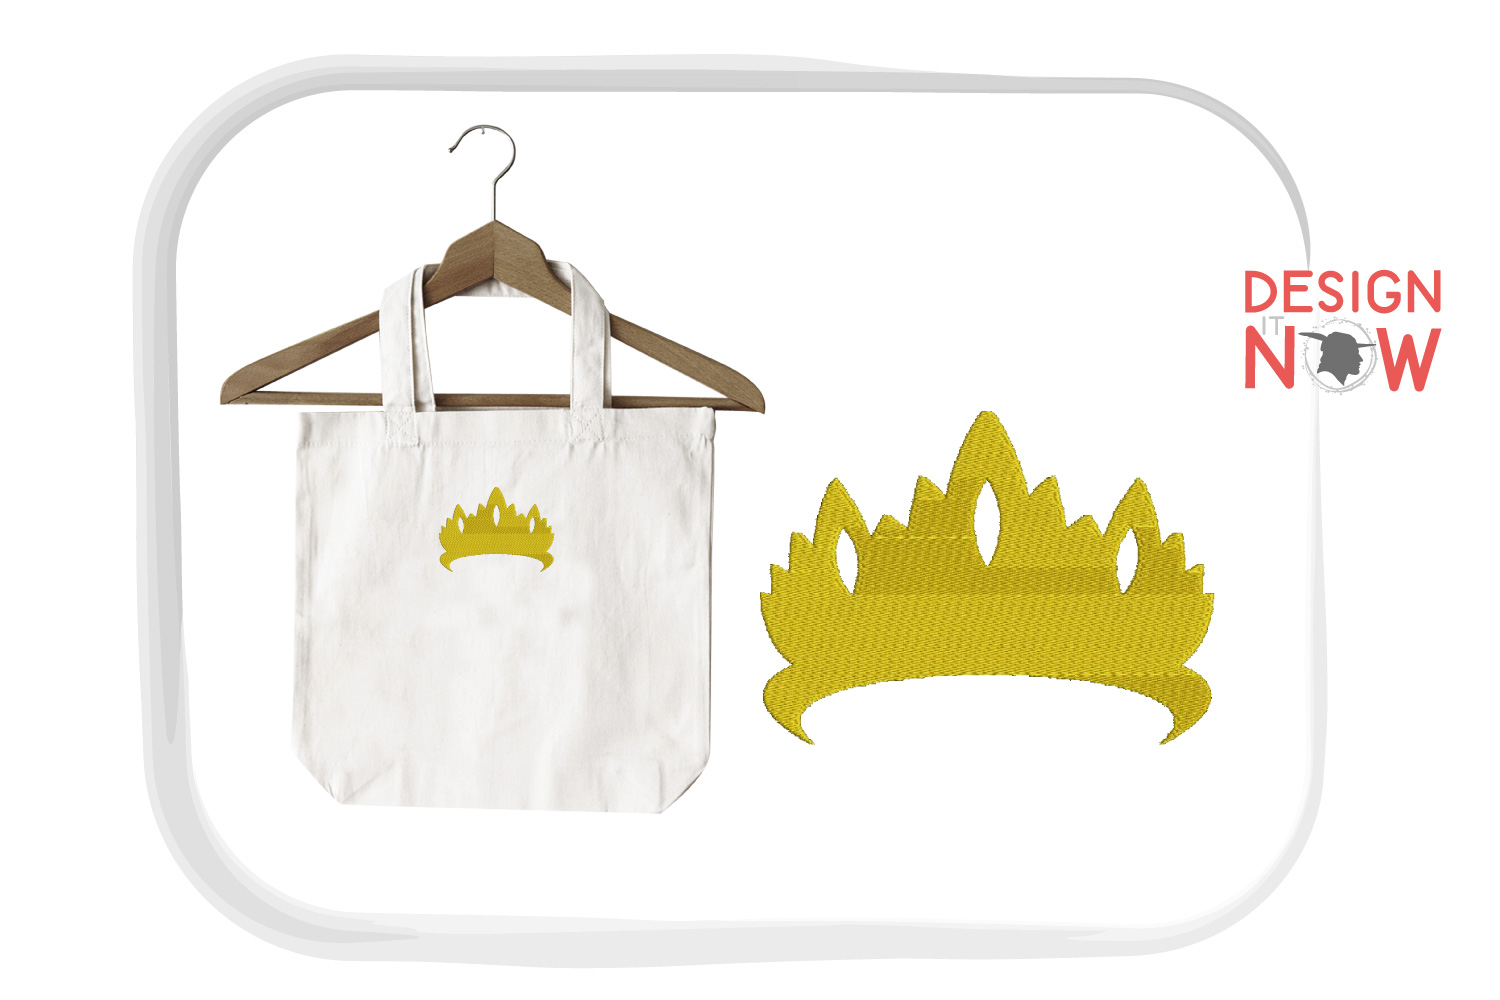 Princess Embroidery Design, Crown Embroidery Pattern example image 4